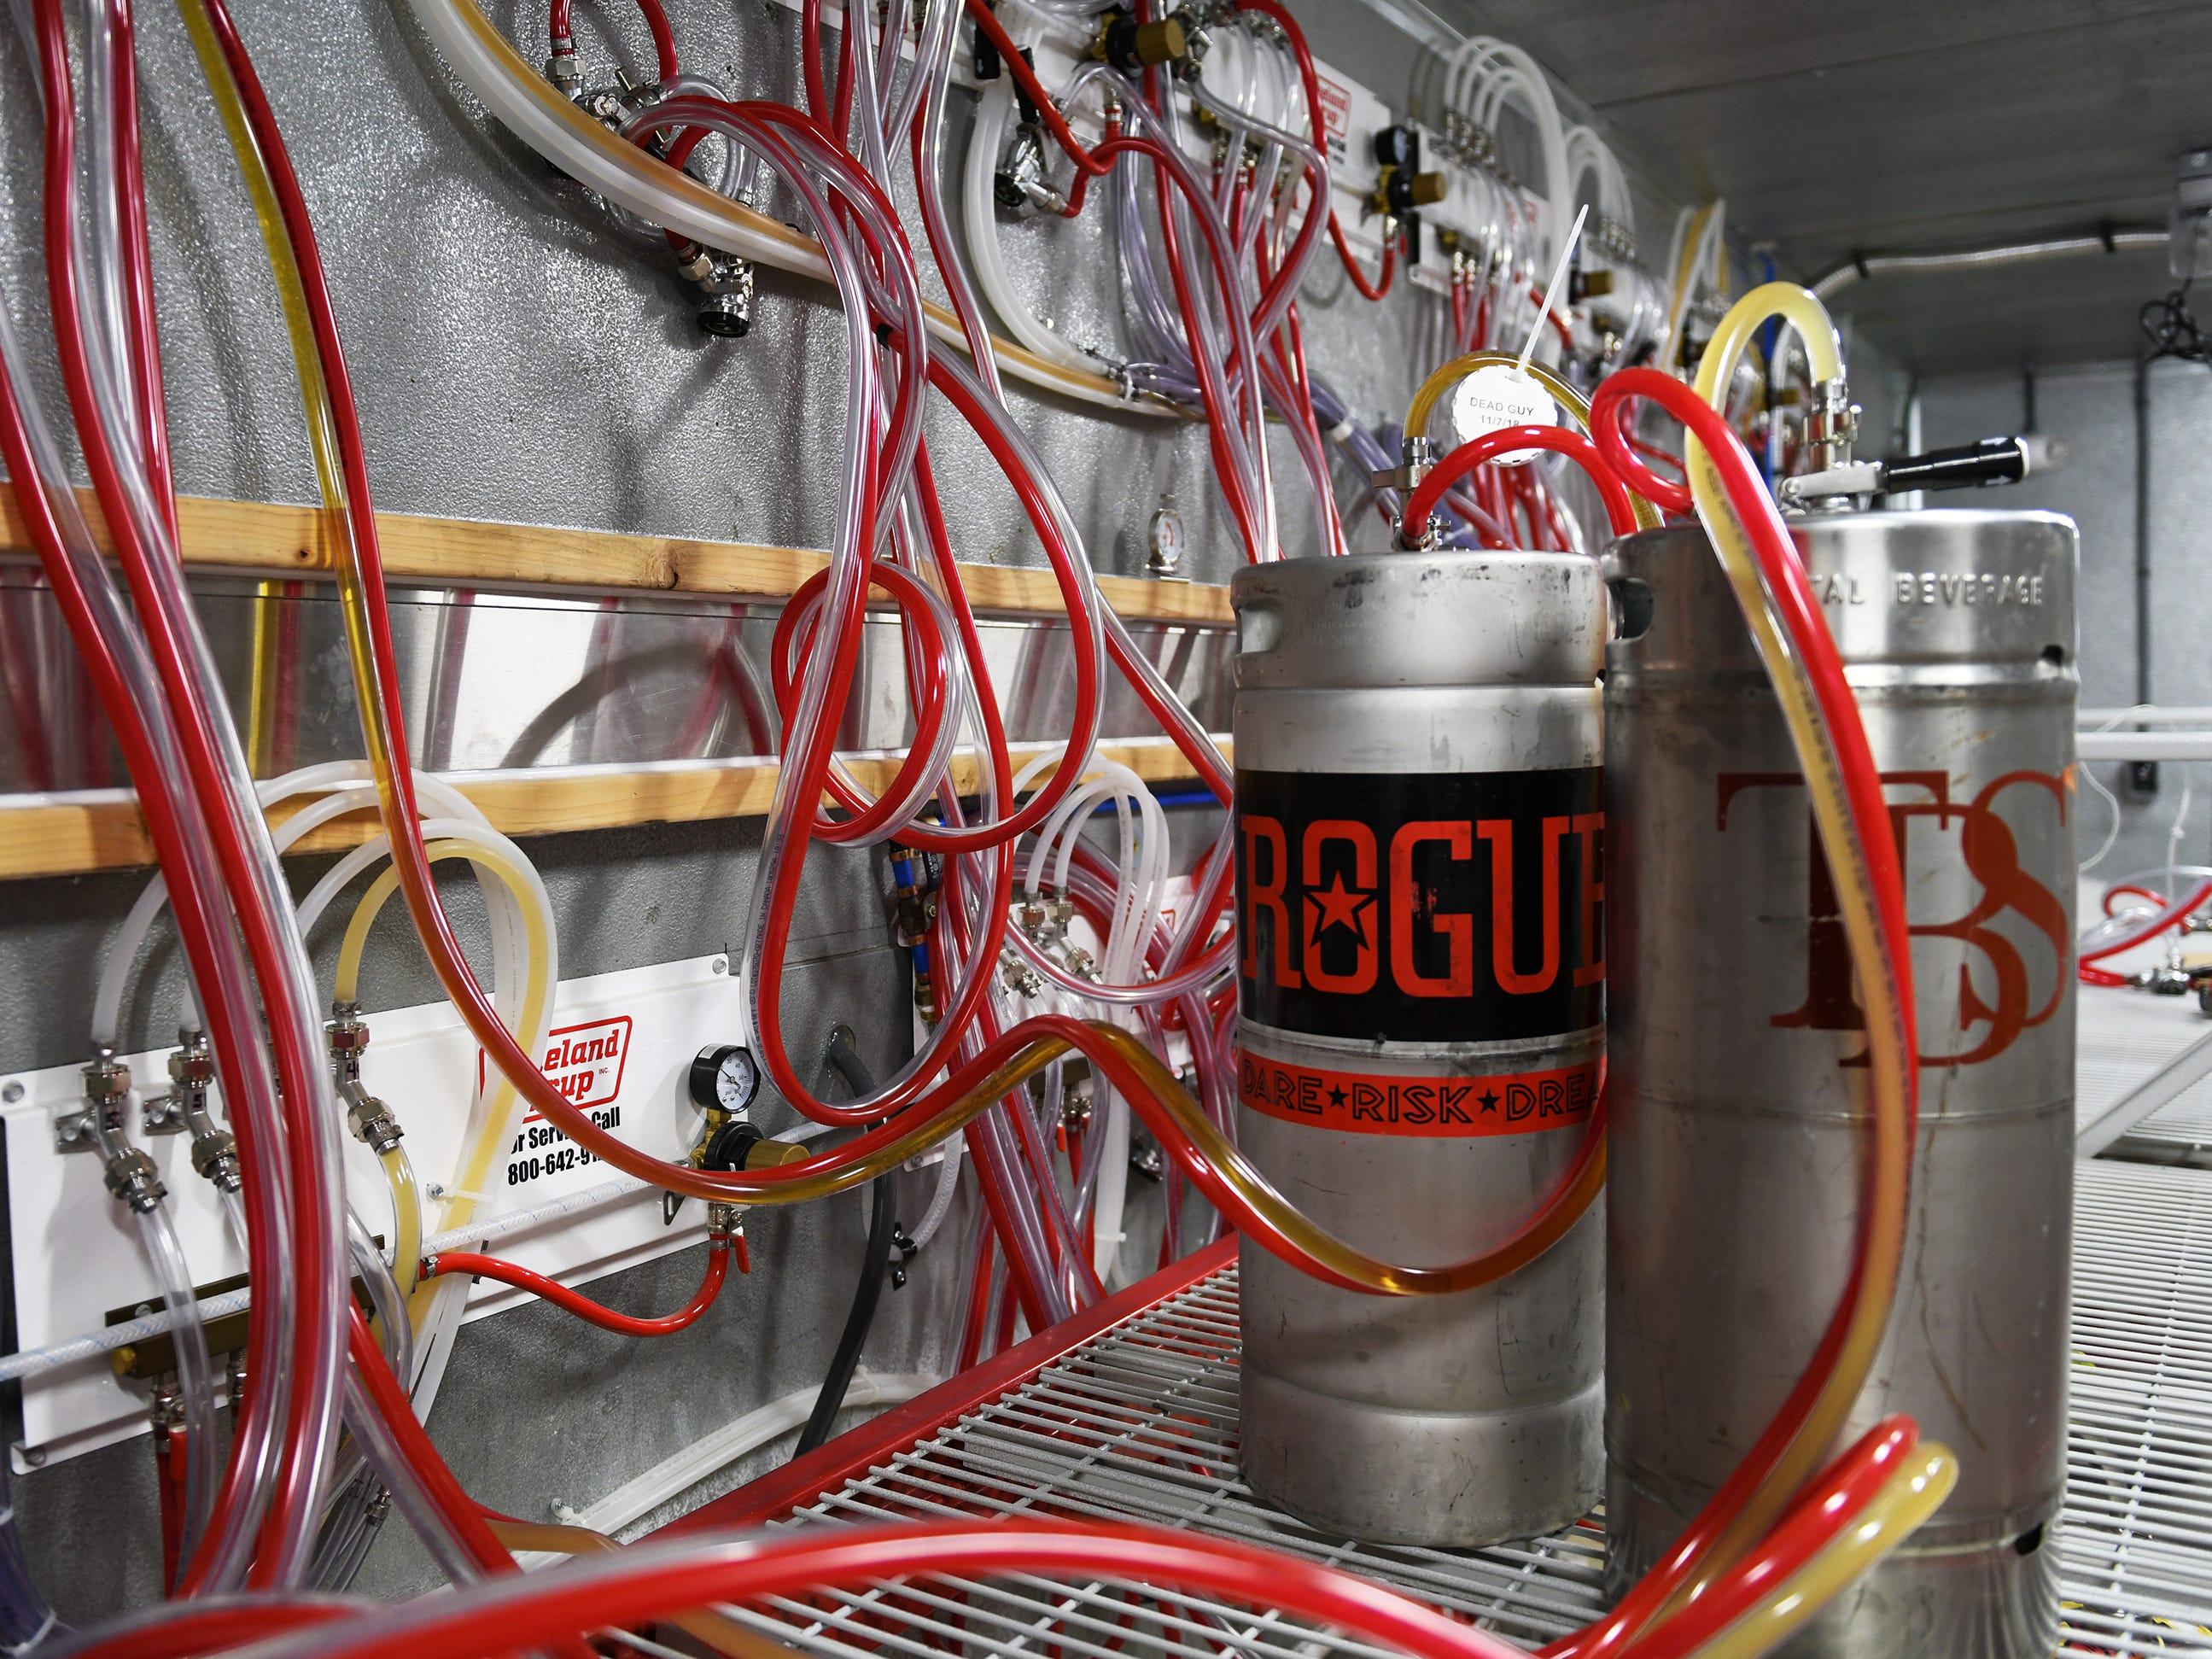 A keg of Rogue is tapped at The Brass Tap in Vineland as workers prepare for a January opening on Monday, Jan. 8. 2019.